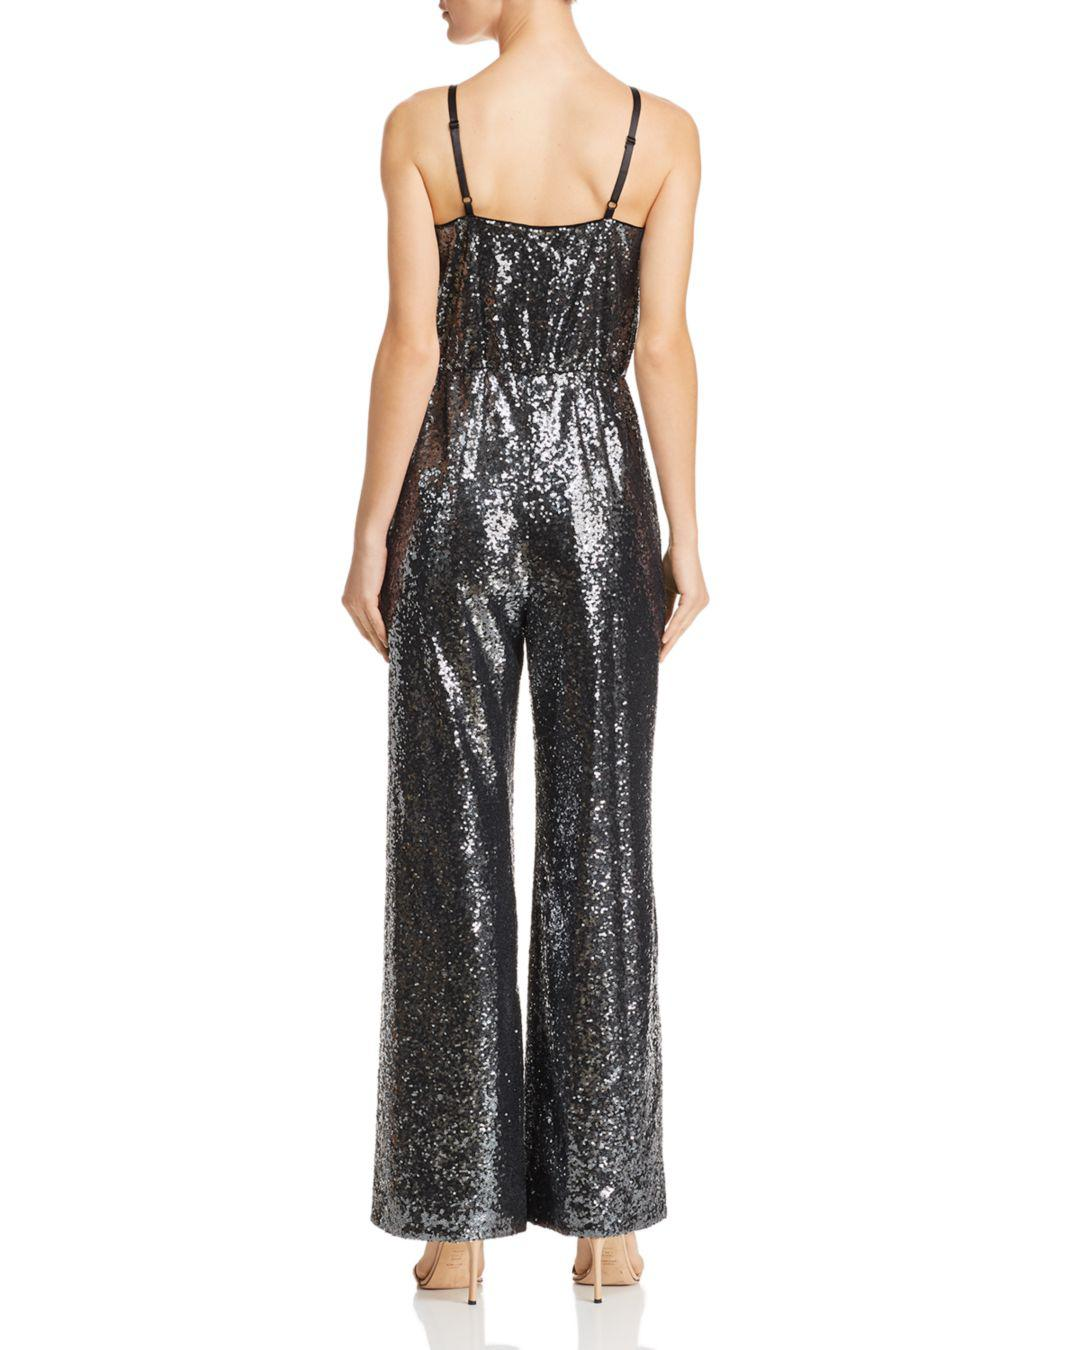 2064cf45800 Lyst - Laundry by Shelli Segal Plunging Sequined Jumpsuit in Black